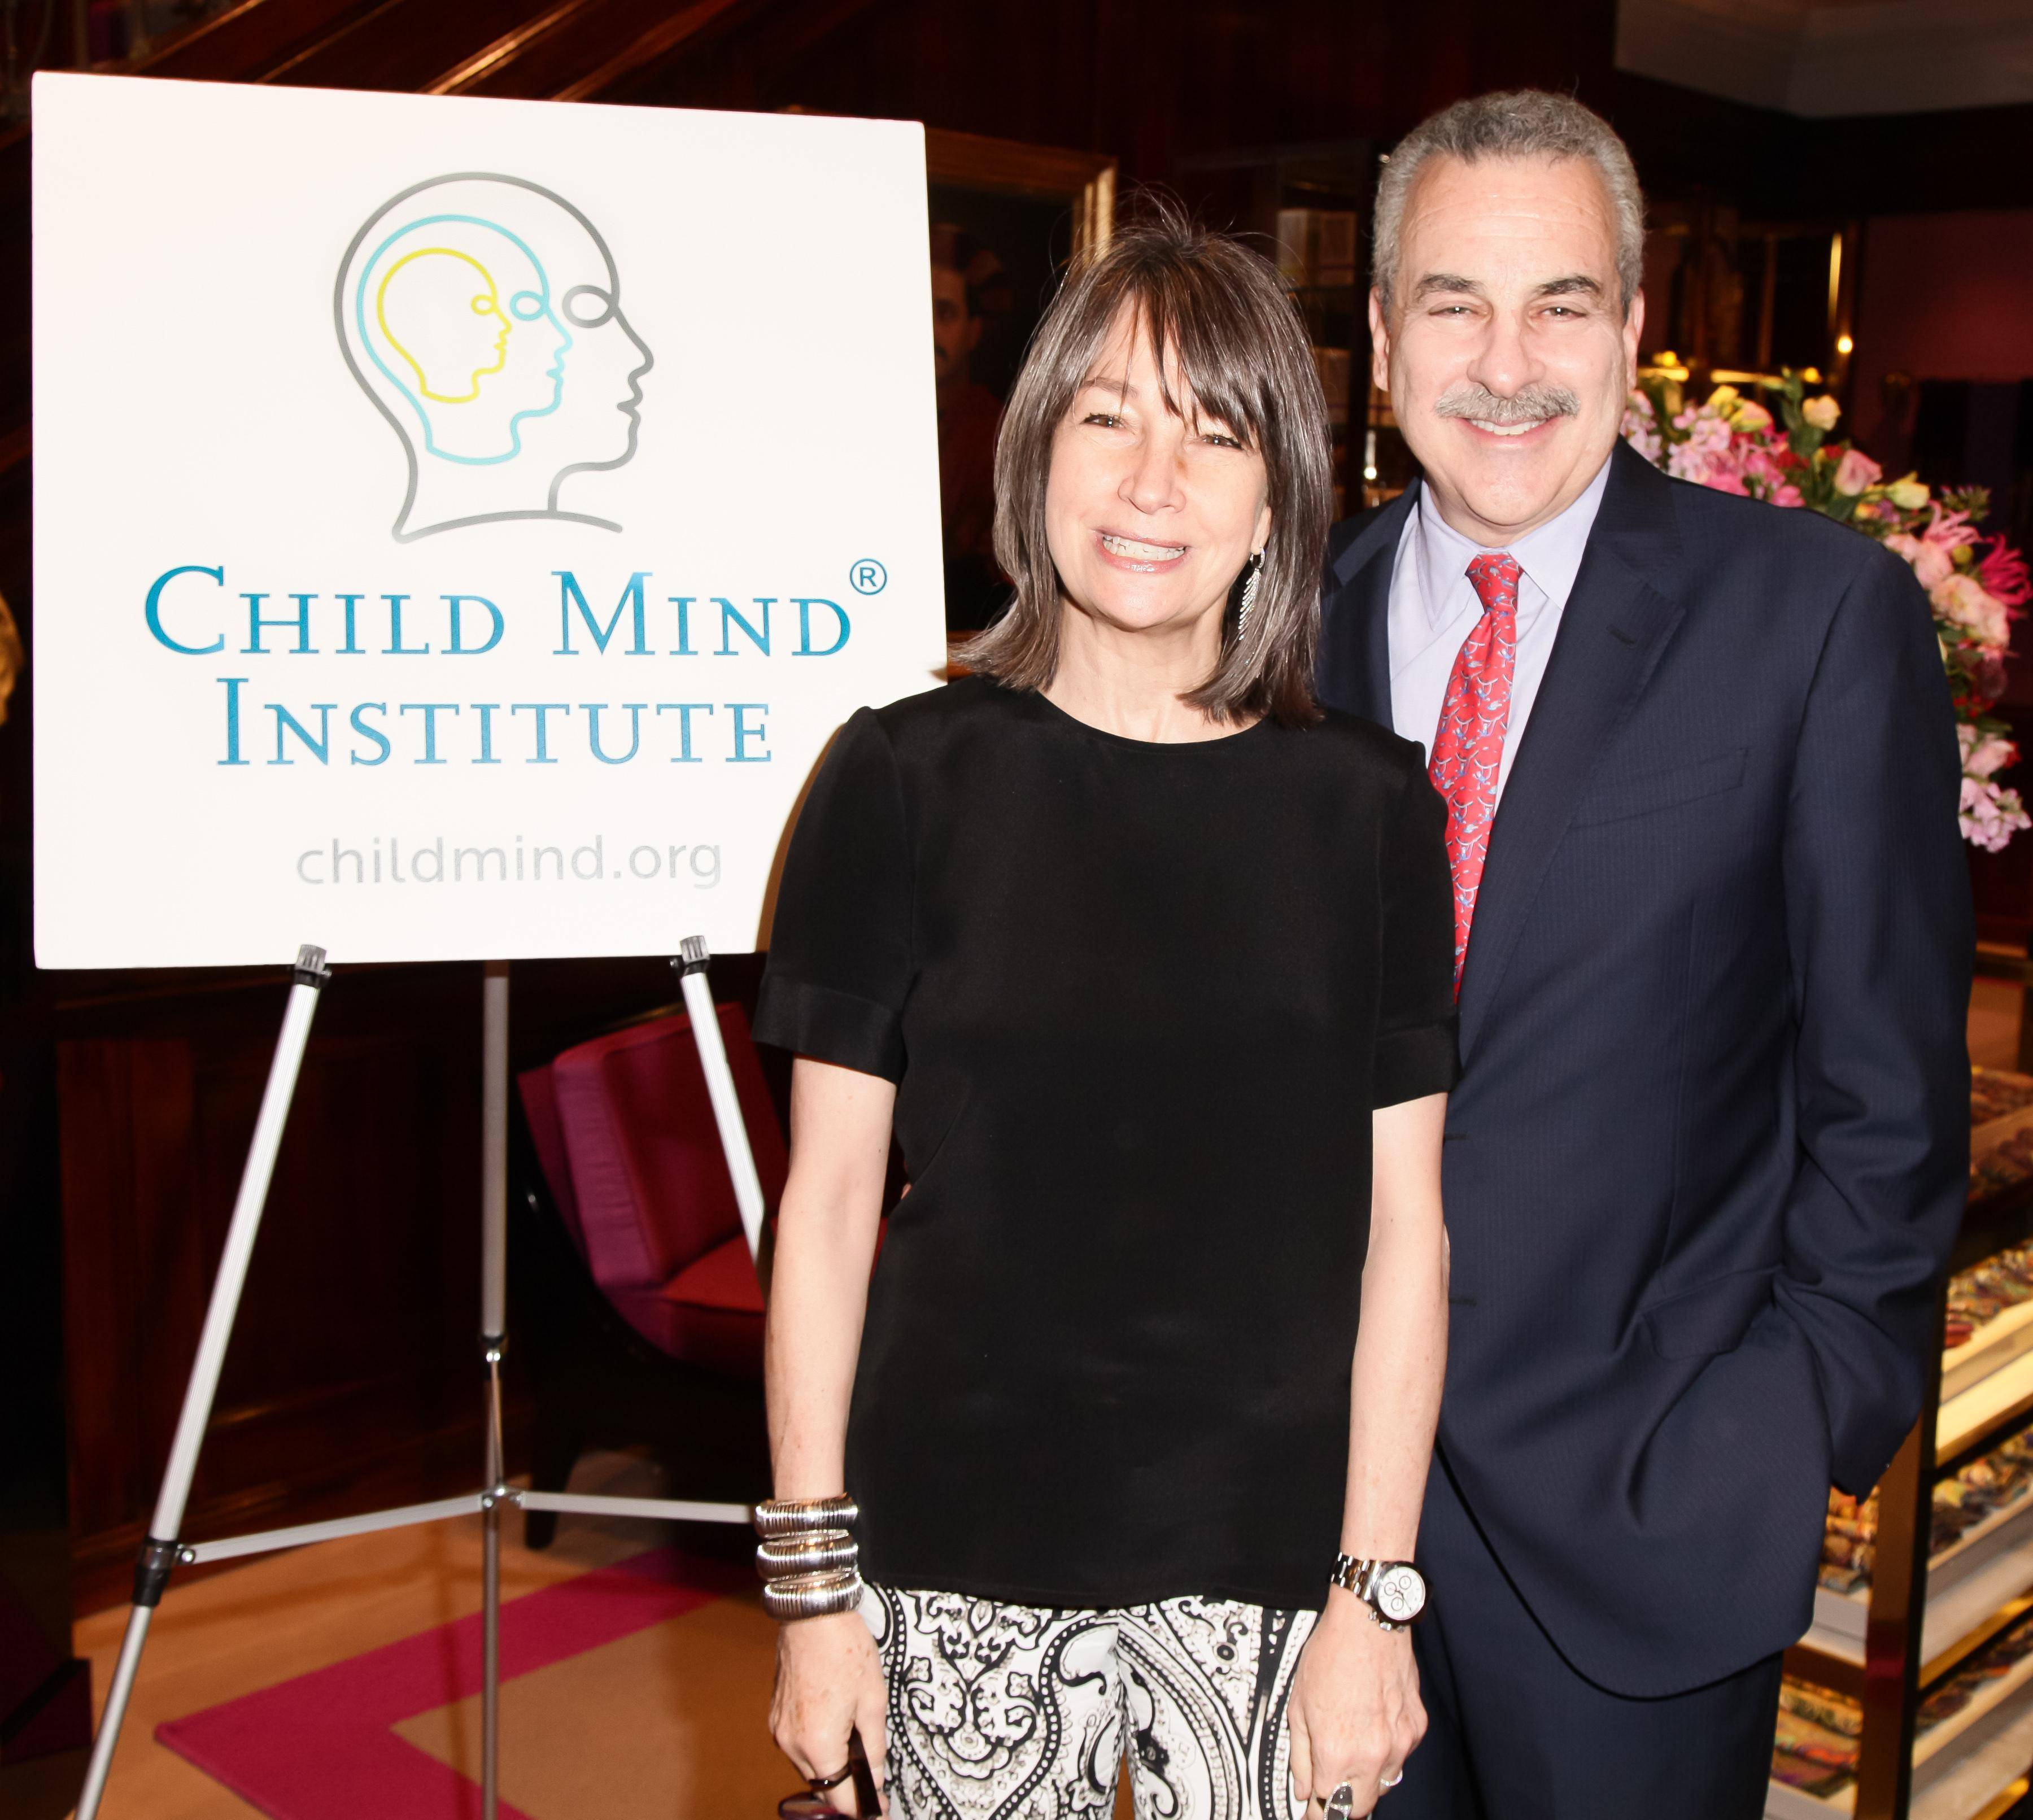 FASHION & PASSION: ETRO TEAMS UP WITH CHILD MIND INSTITUTE TO PROMOTE THE IMPORTANCE OF CHILDRENS MENTAL HEALTH AND SHOW THE SS14 WOMENS COLLECTION